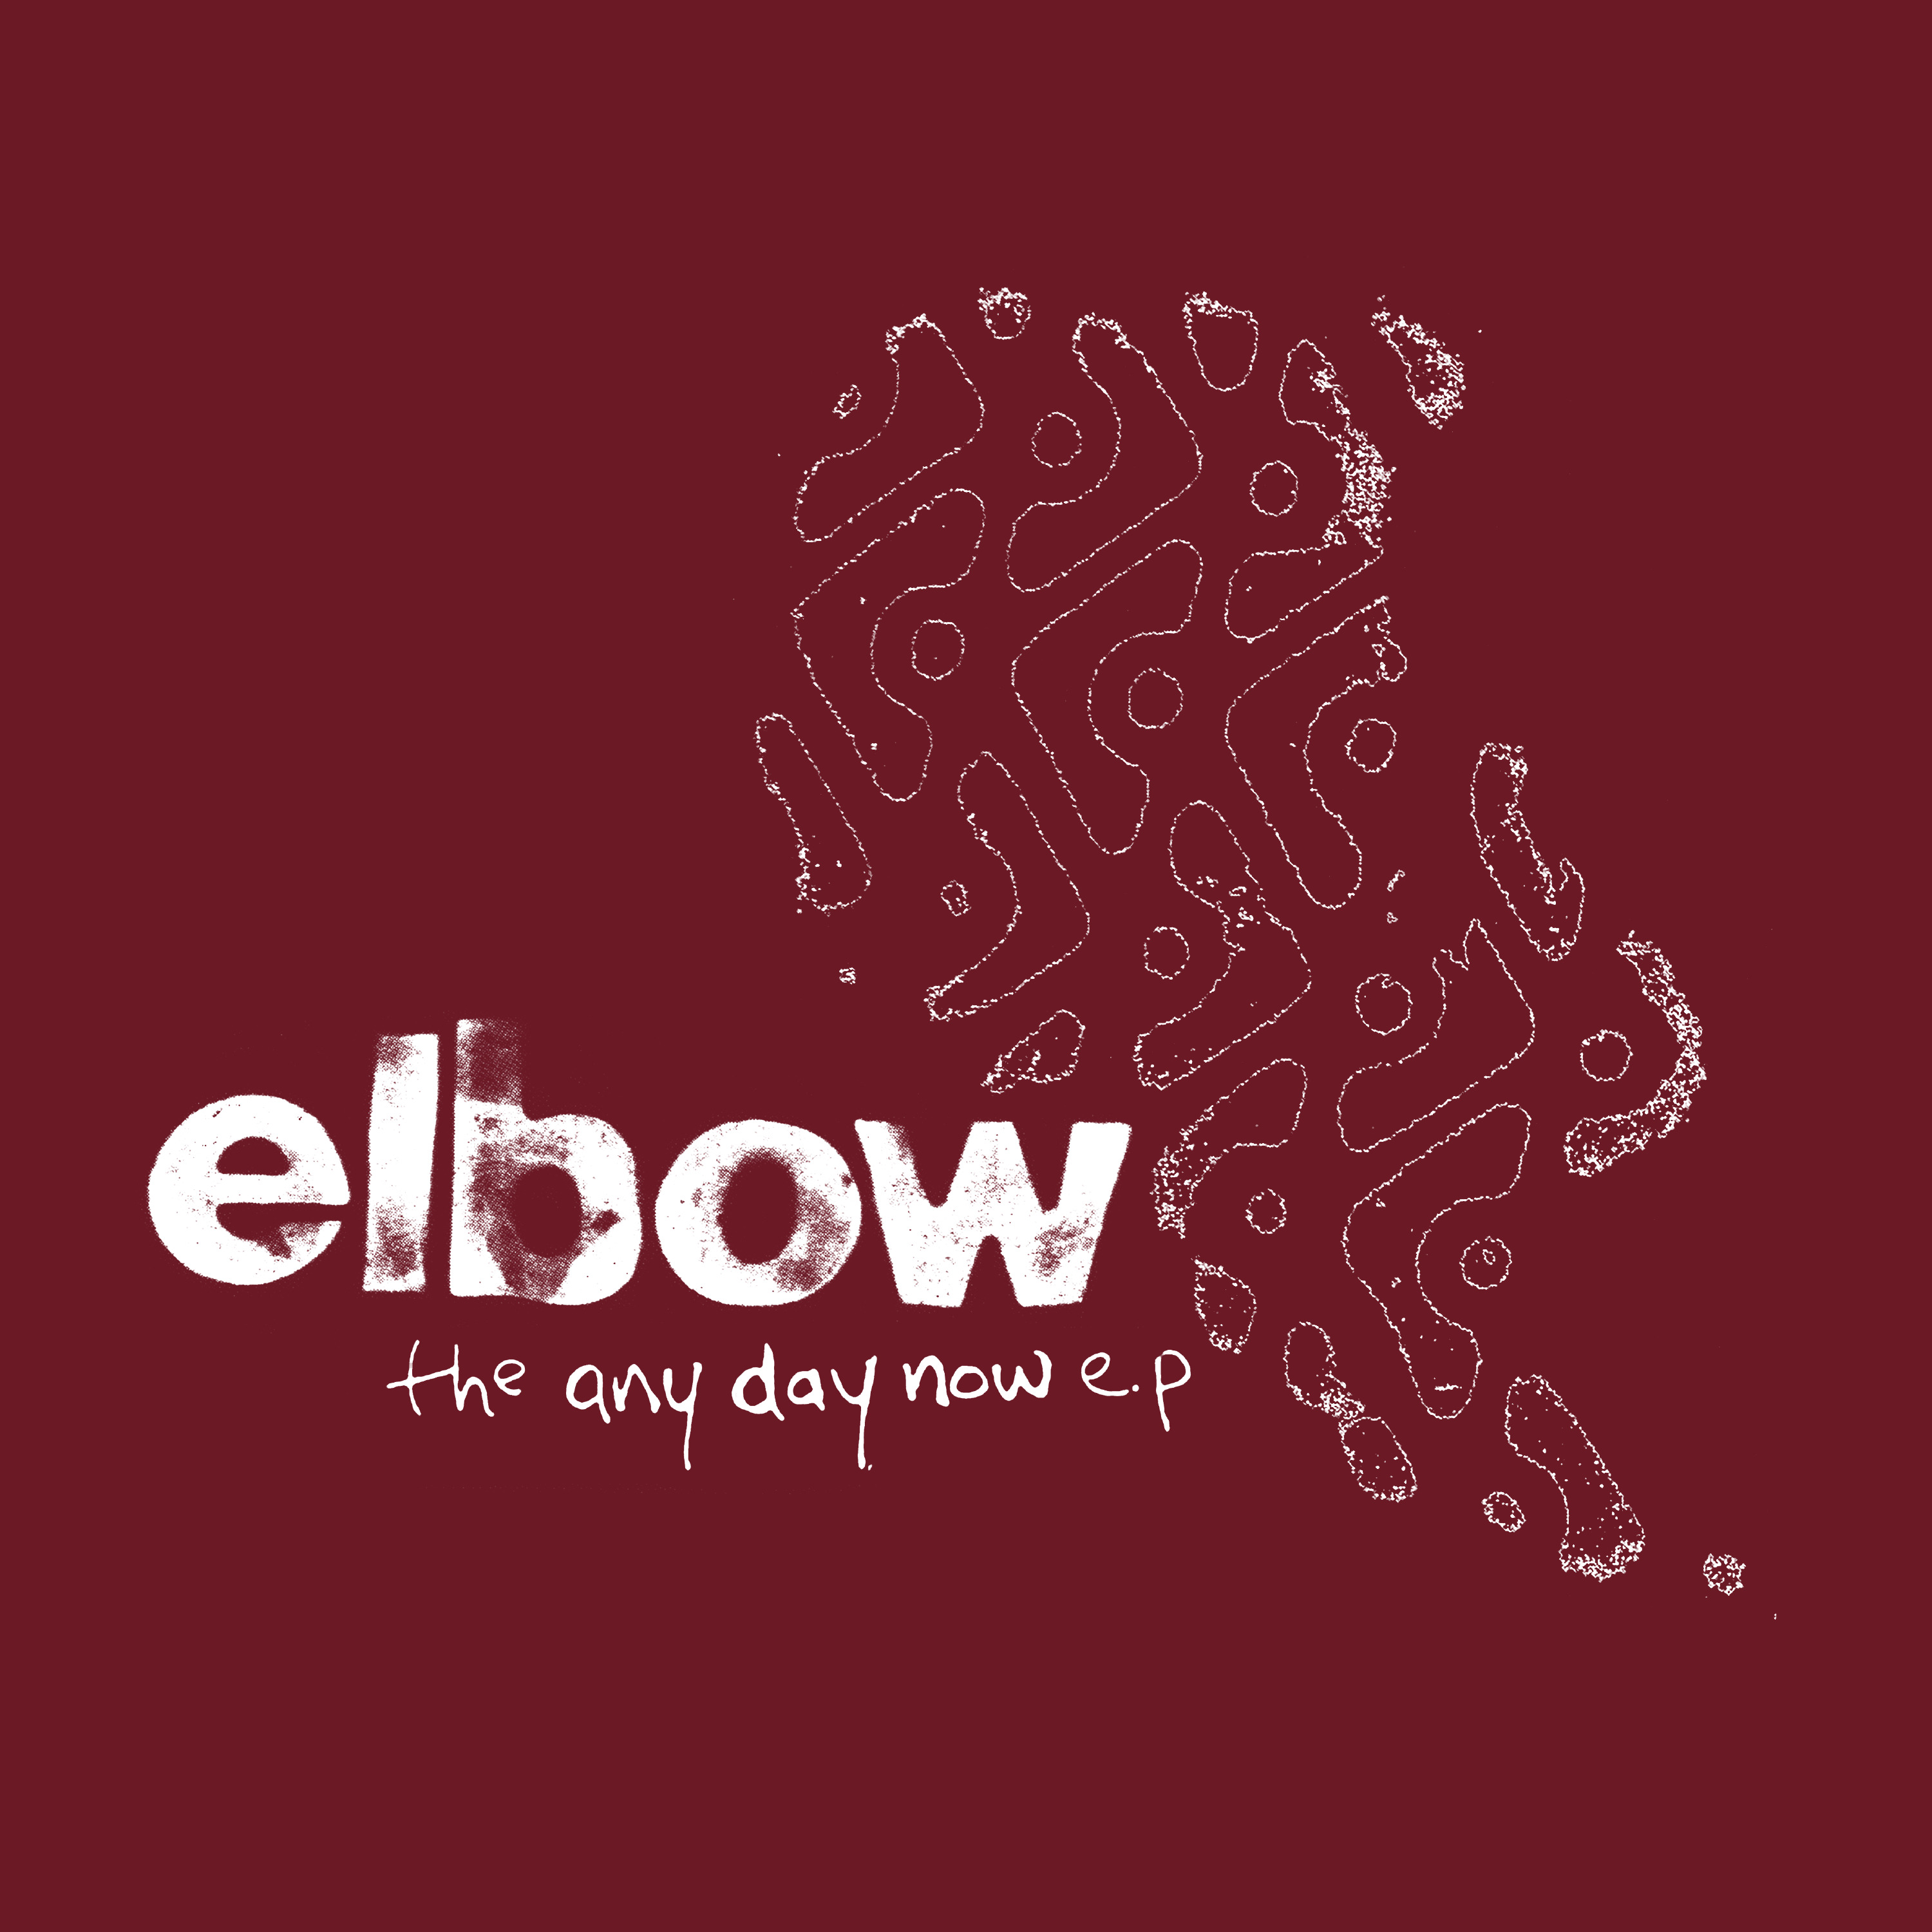 Elbow - The Any Day Now EP